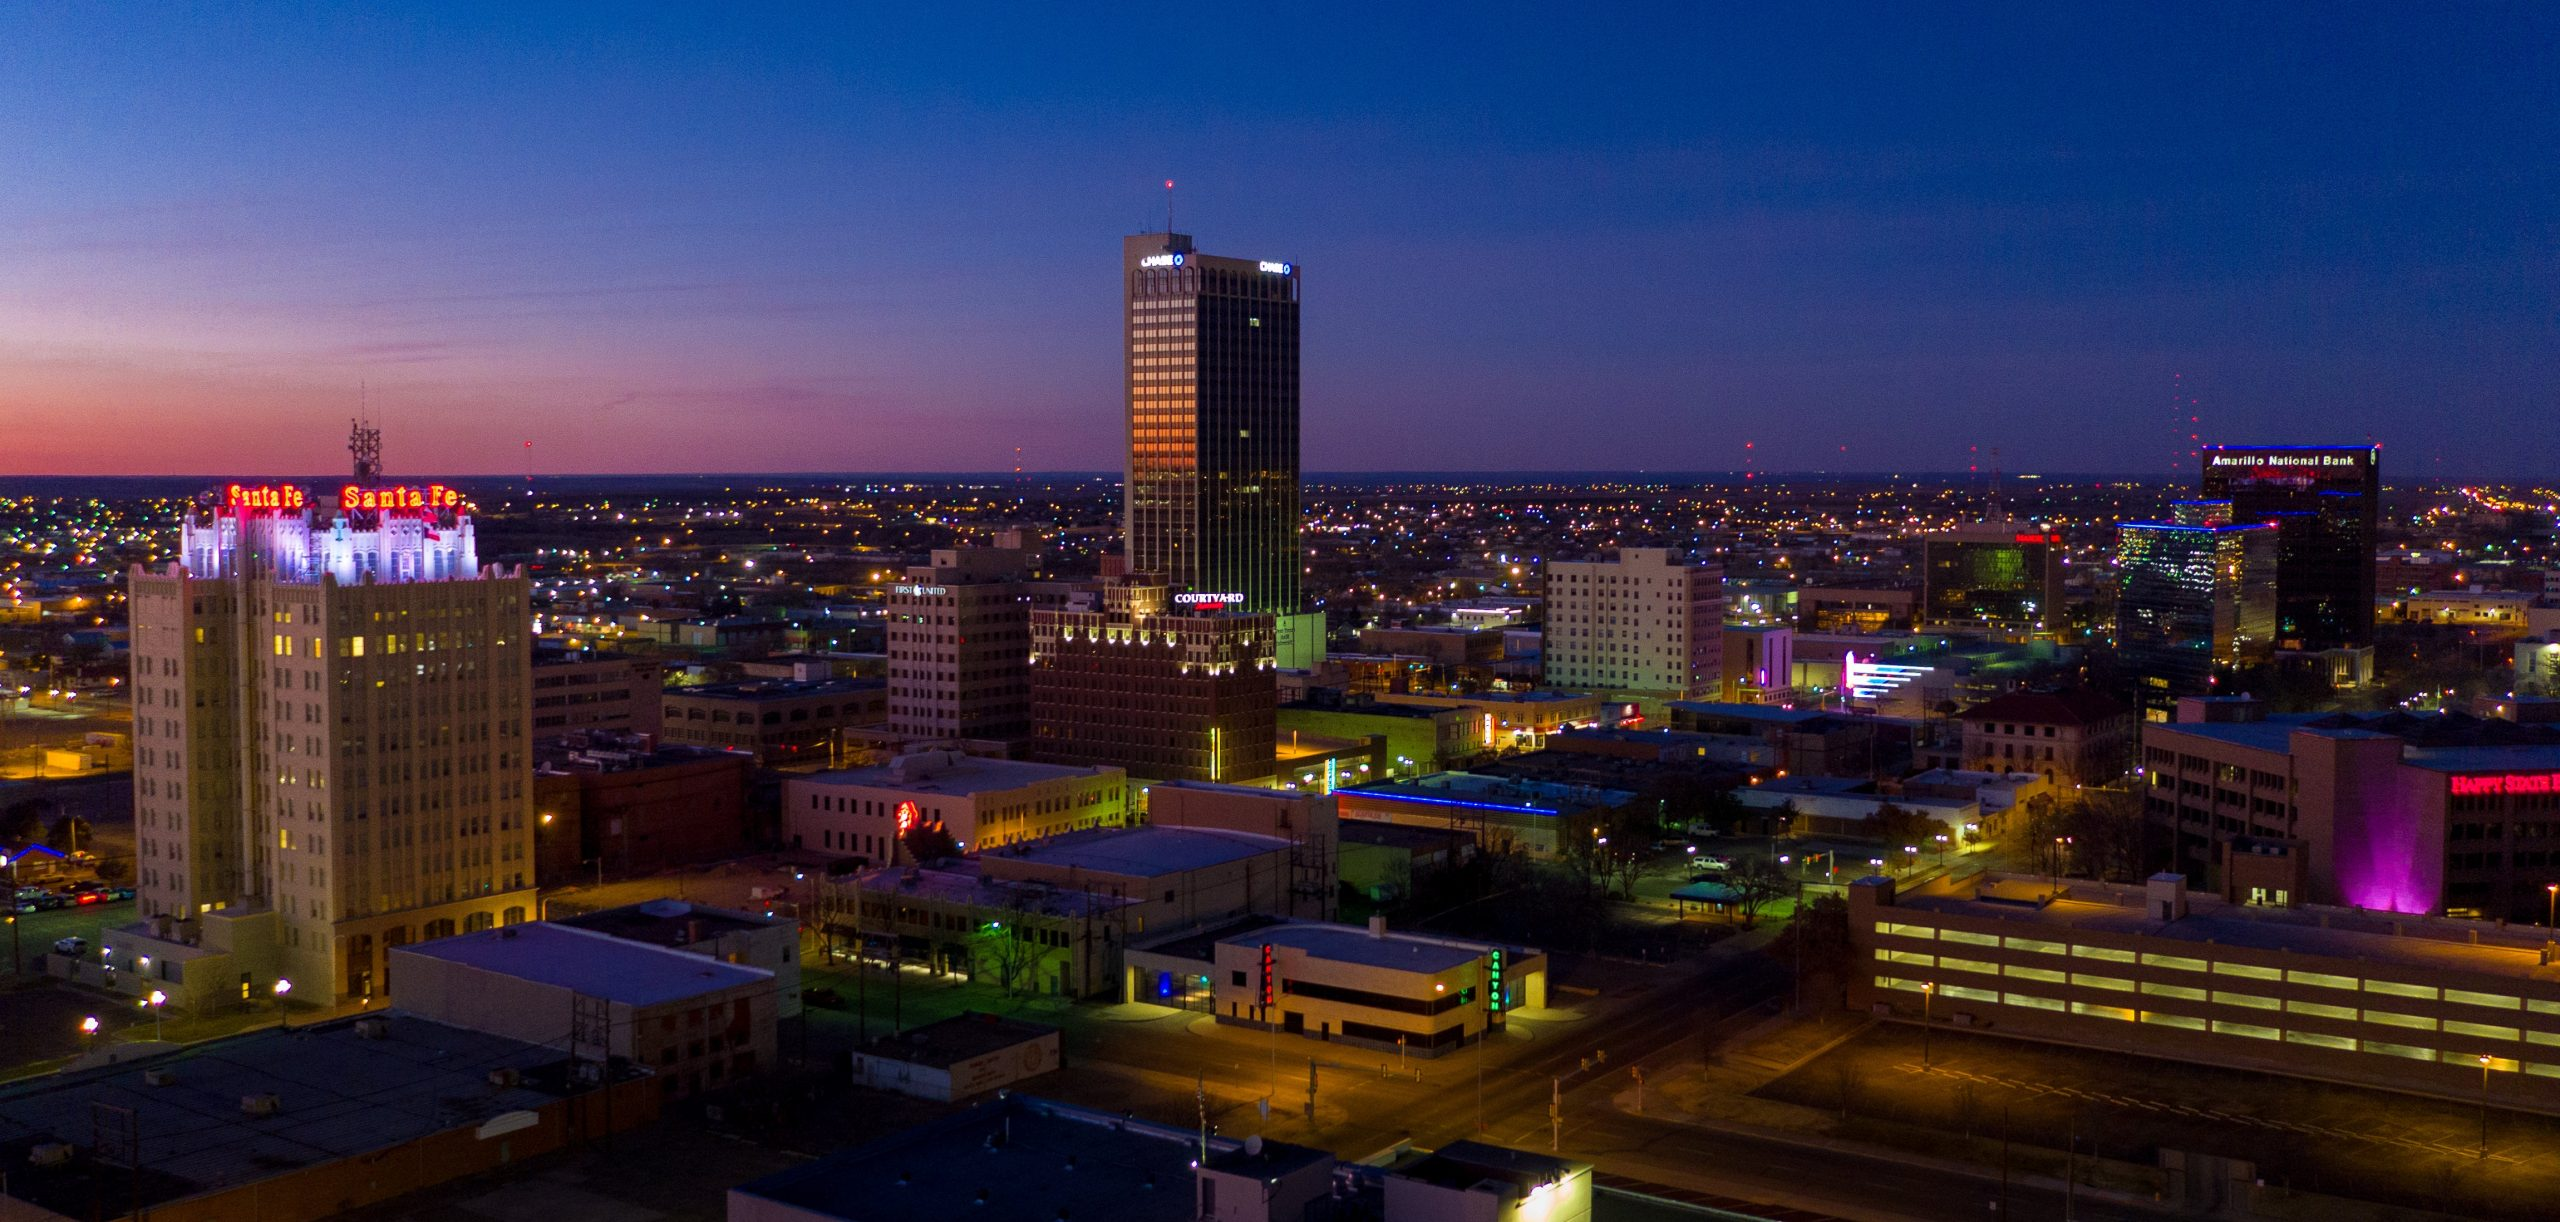 Shows the downtown view of Amarillo, Texas, where the author is doing her internship